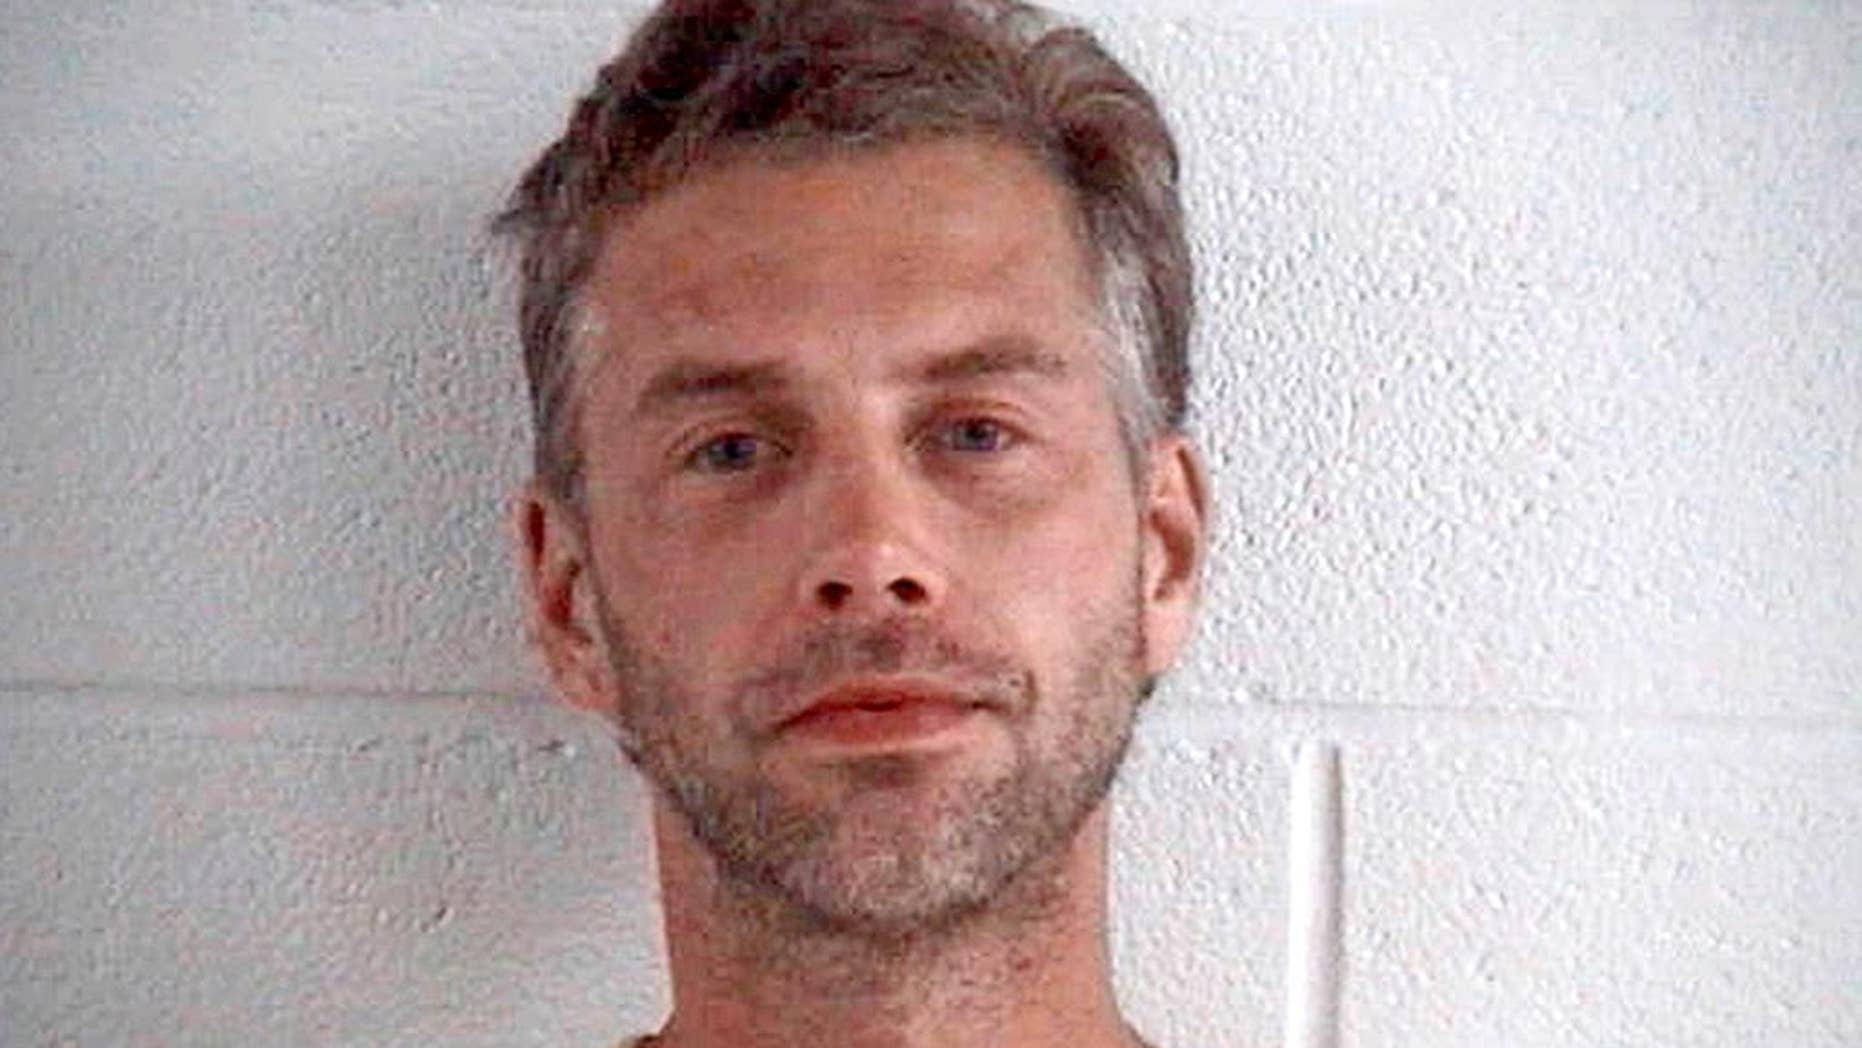 FILE – This file photo provided by the Ashland County Sheriff Office shows Shawn Grate, arrested Sept. 13, 2016, in Ashland, Ohio. Authorities in Ohio have identified the remains of a woman whose death has been connected to Grate, suspected in the killings of at least three other women. A coroner identified the woman whose body was found in September near Mansfield as Candice Cunningham. Media reports say she had been living with Shawn Grate this past summer.(Ashland County Sheriff Office via AP, File)